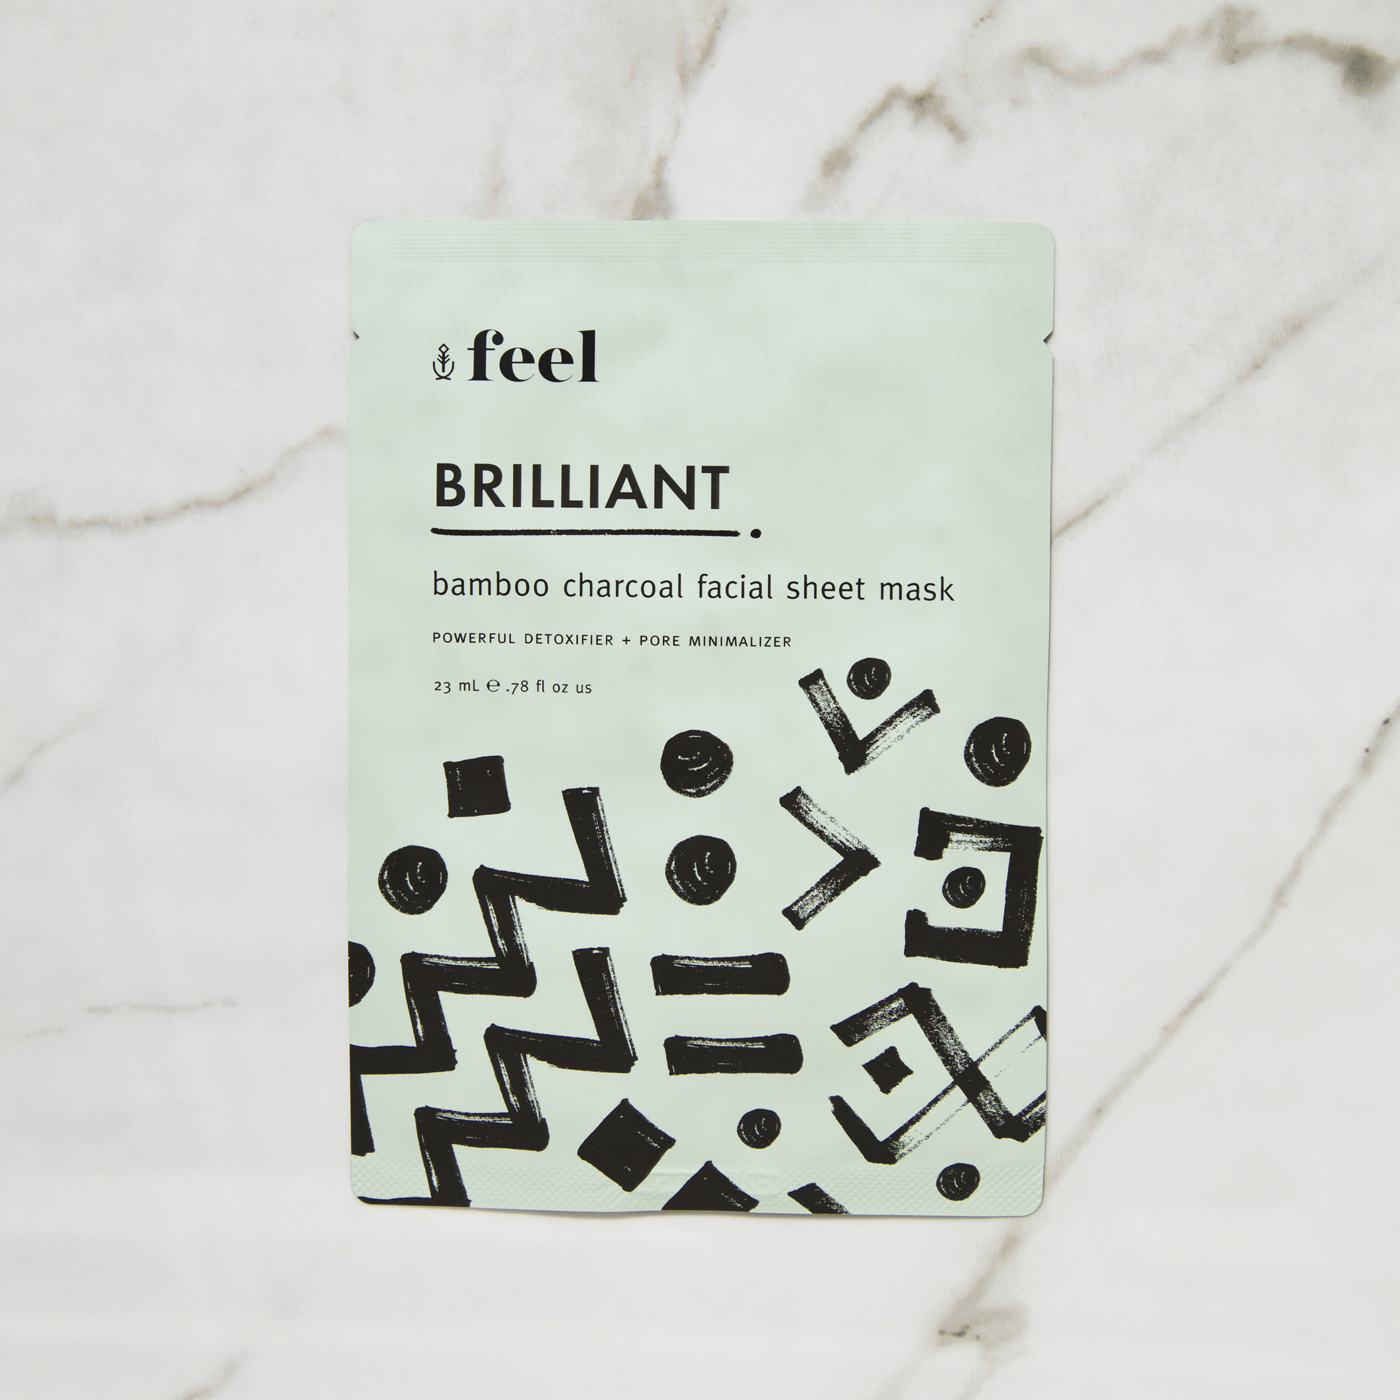 Feel Brilliant Bamboo Charcoal Facial Sheet Mask